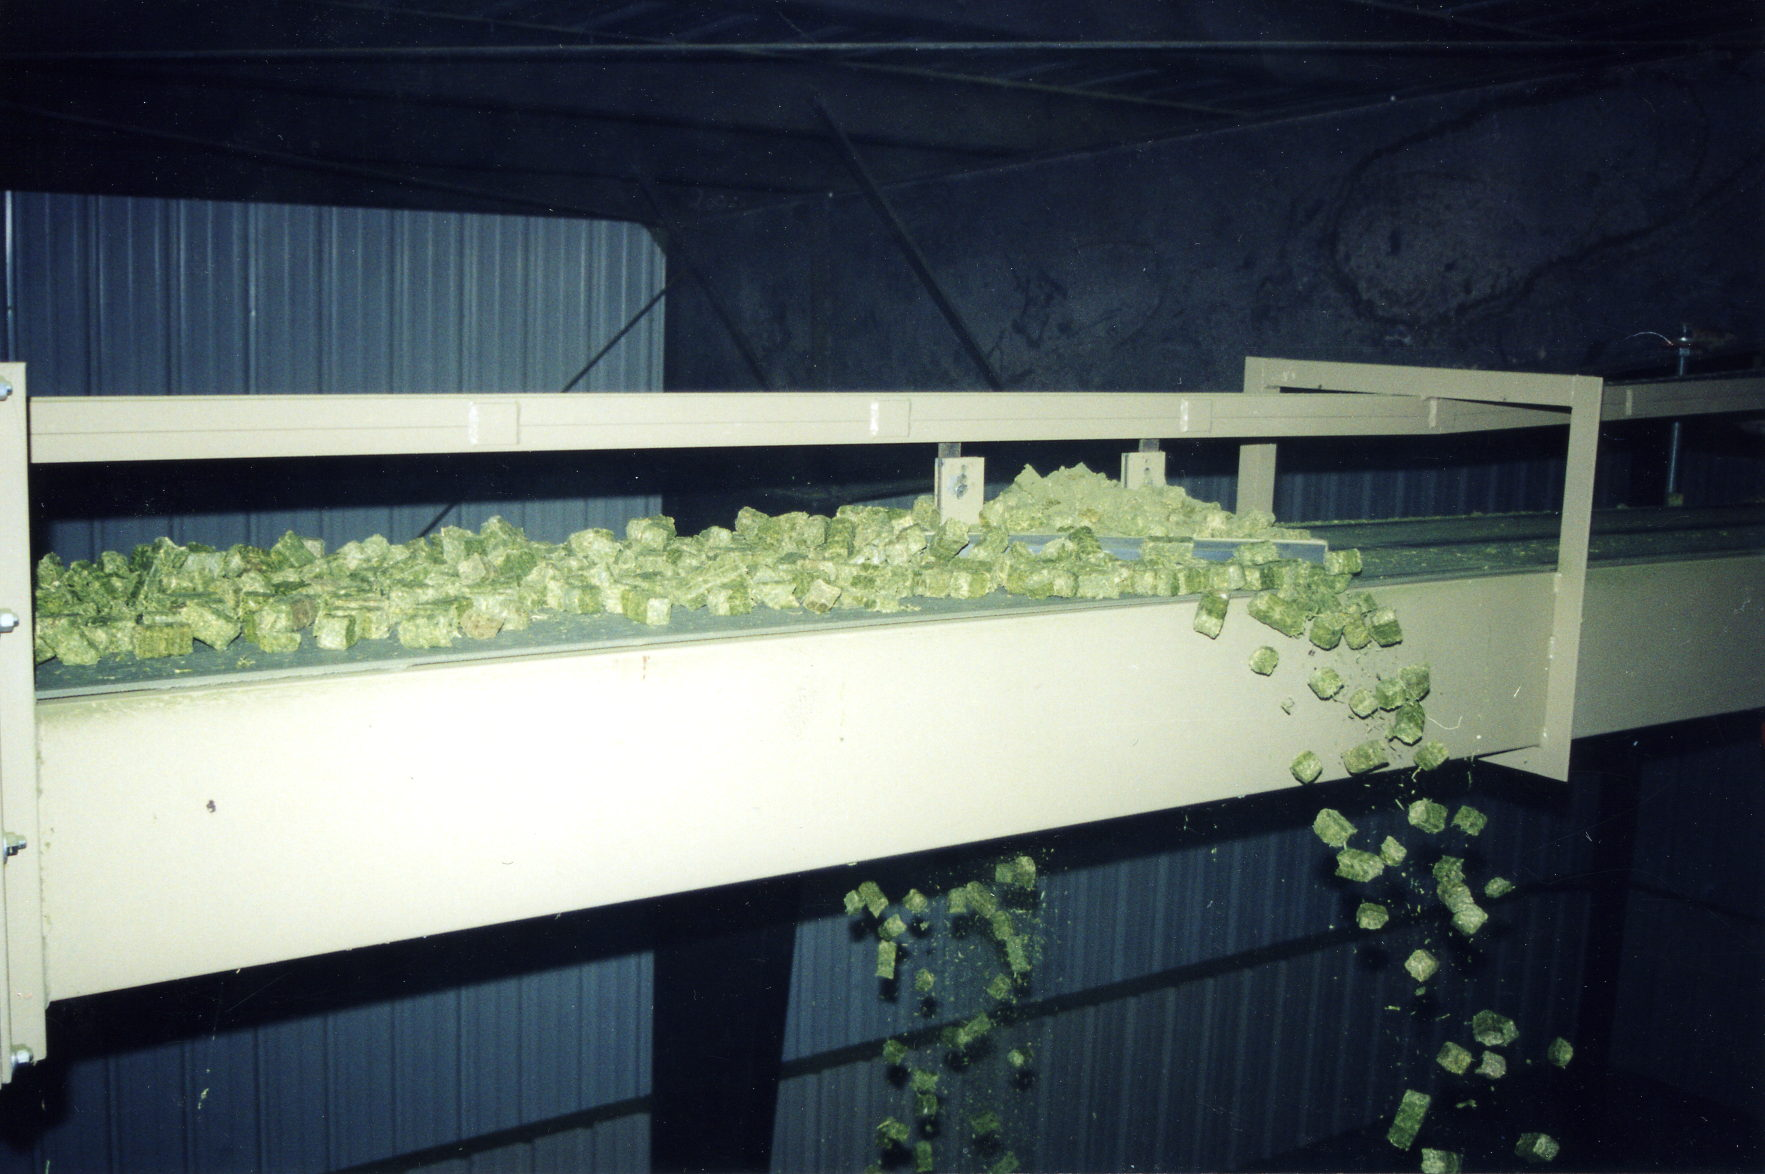 Overhead Conveyor conveyring ground or cubed biomass materials